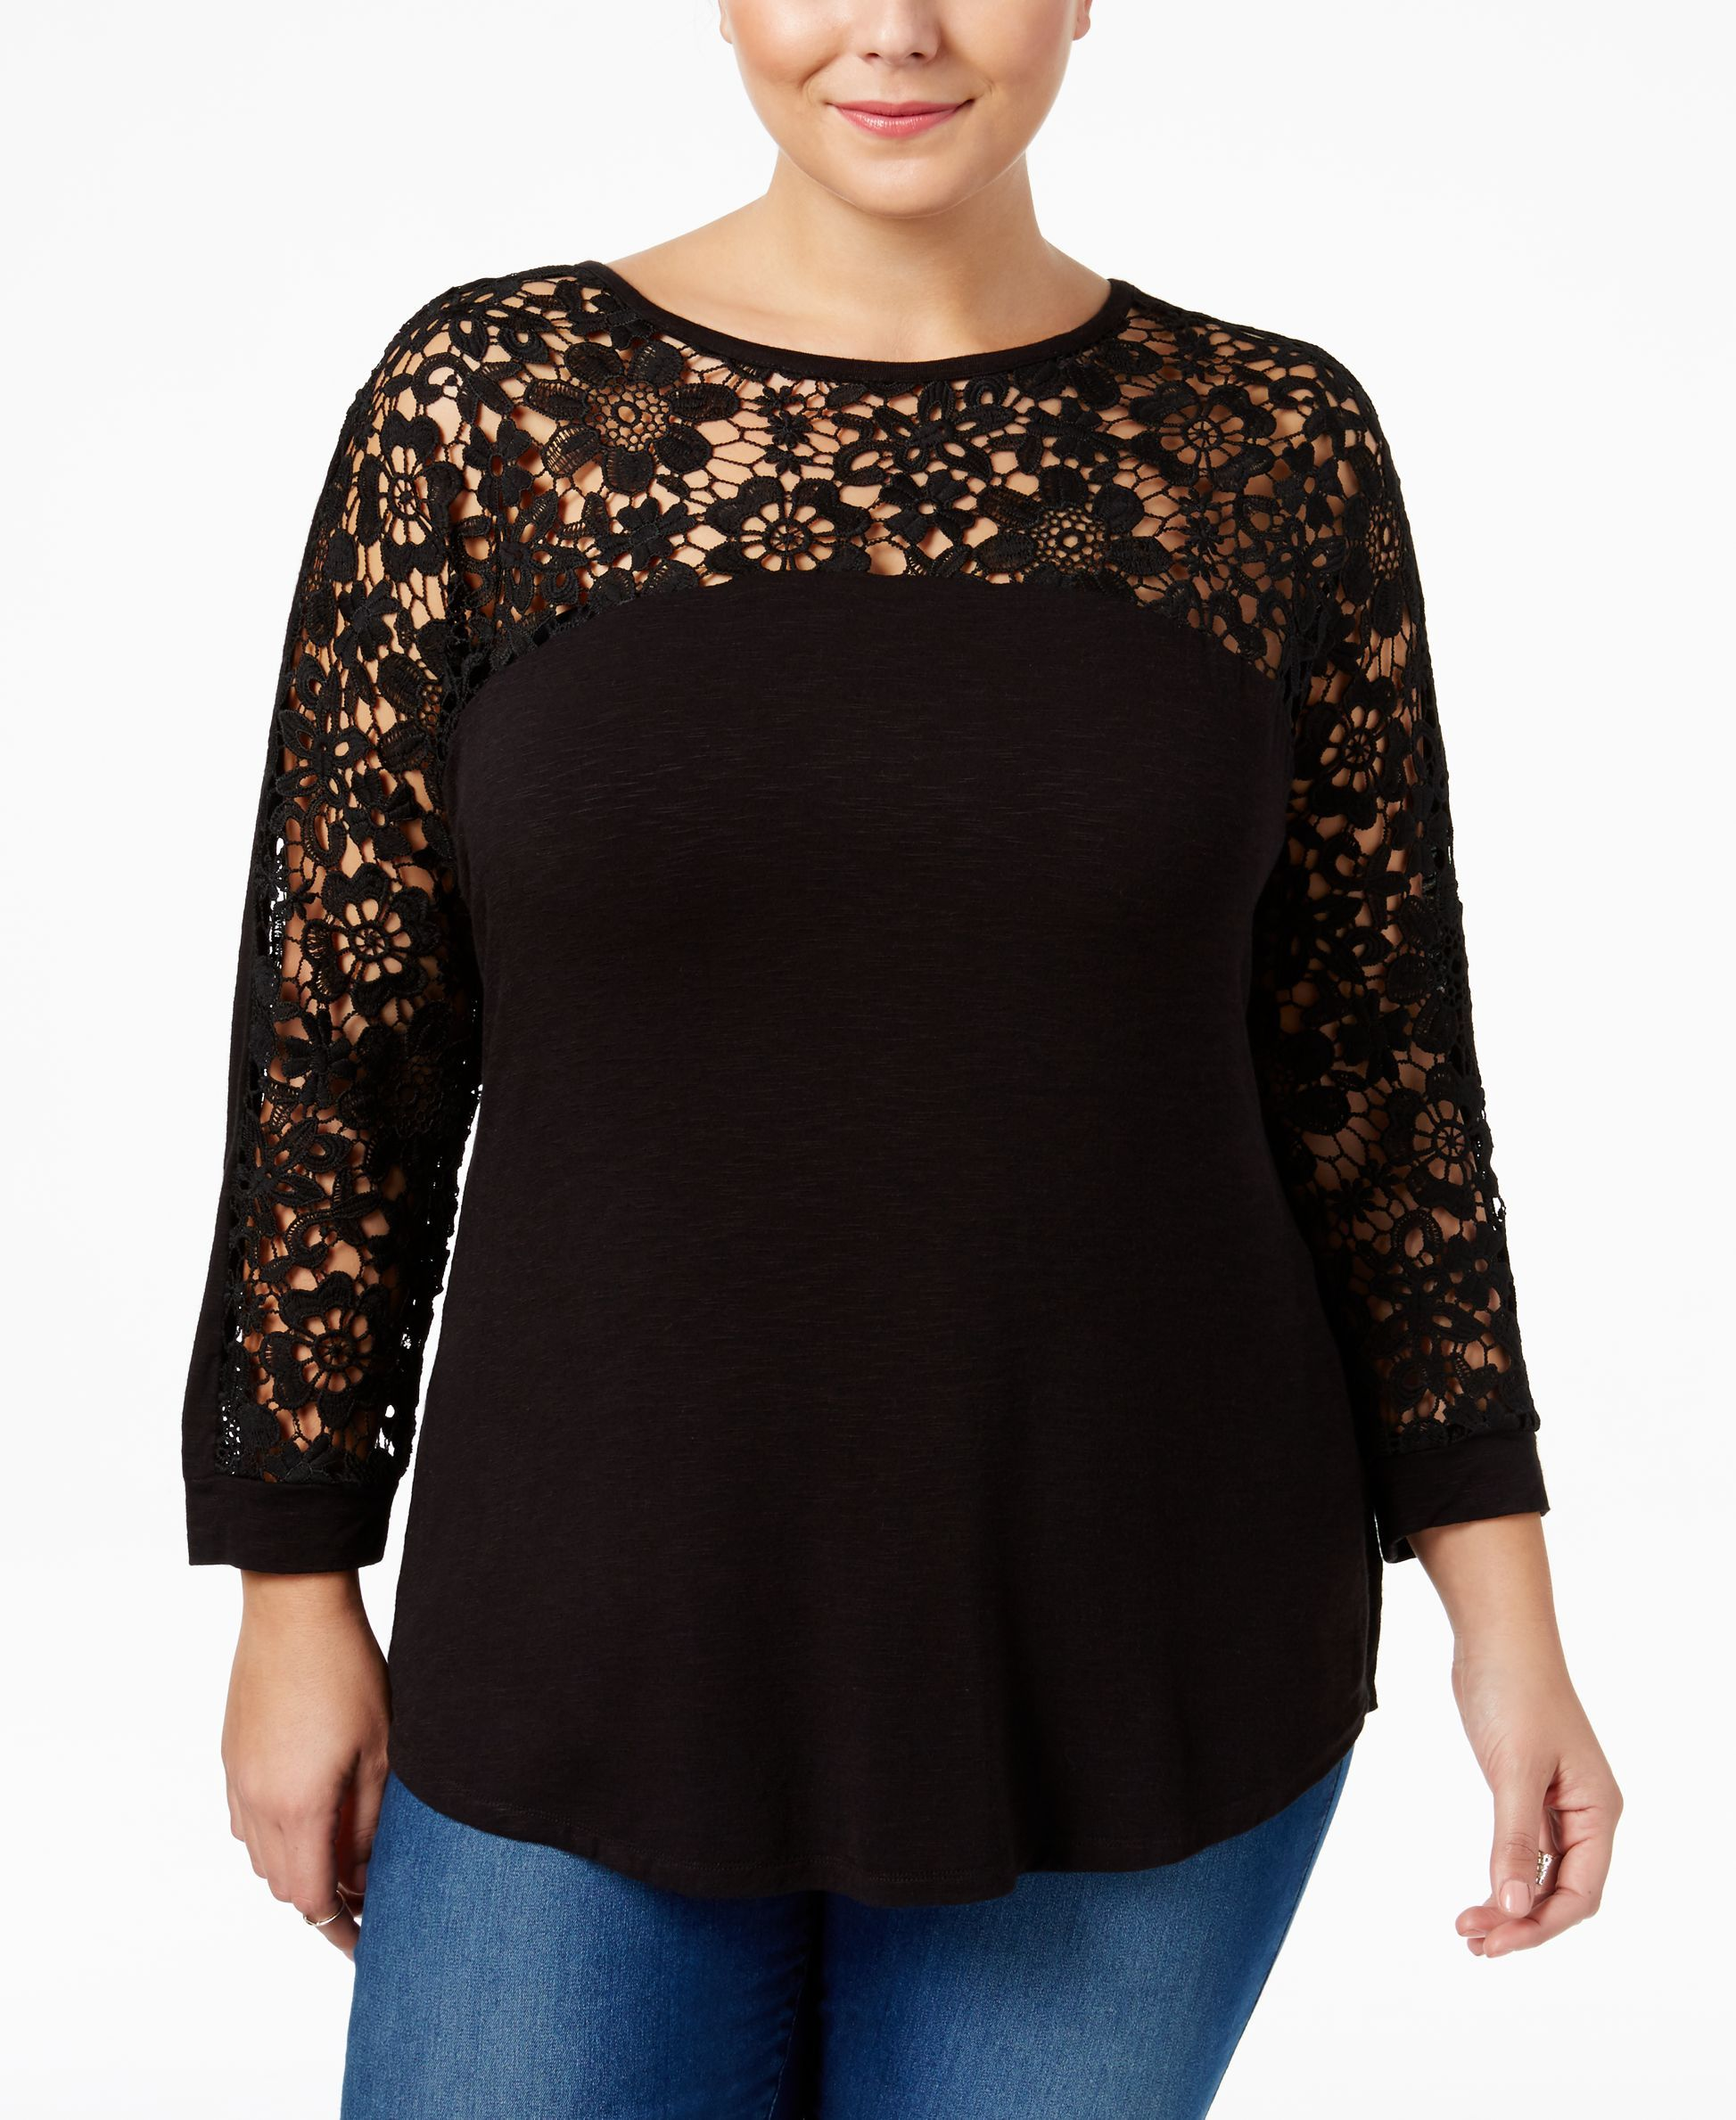 974f40dfe934 Extra Touch Trendy Plus Size Lace Top